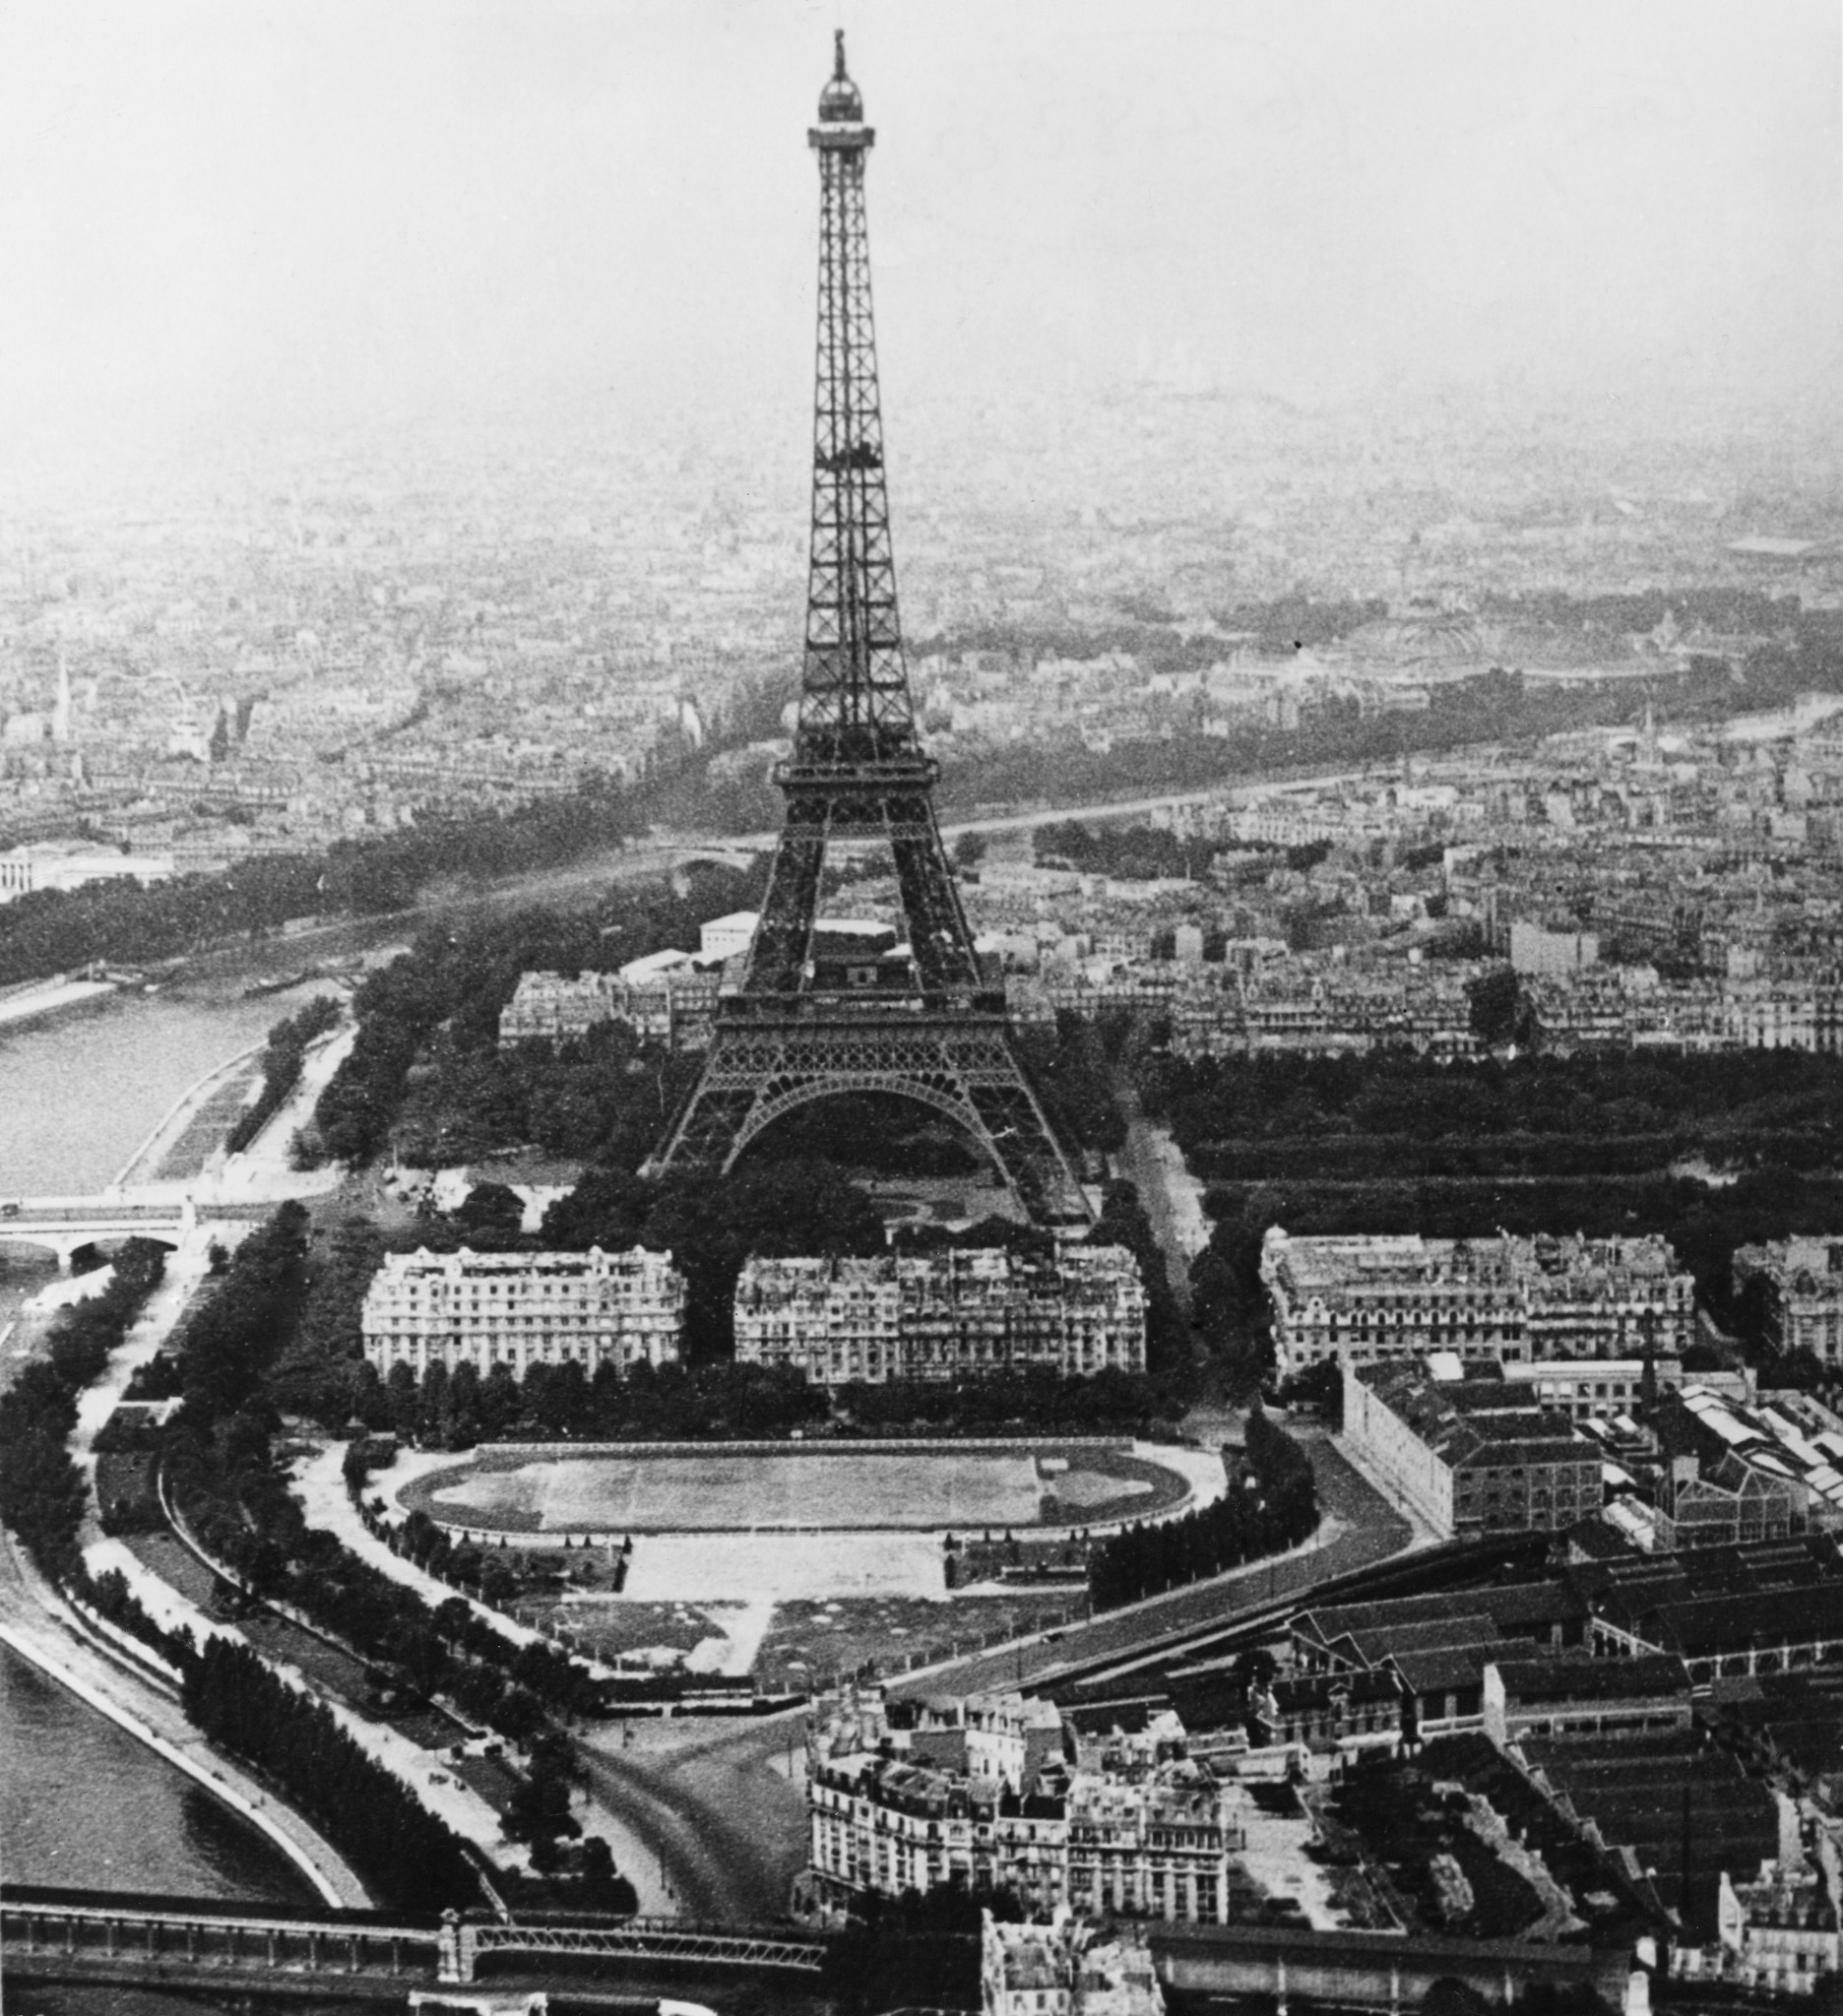 An aerial view of the Eiffel Tower, Paris. ©Keystone/Hulton Archive/Getty Images